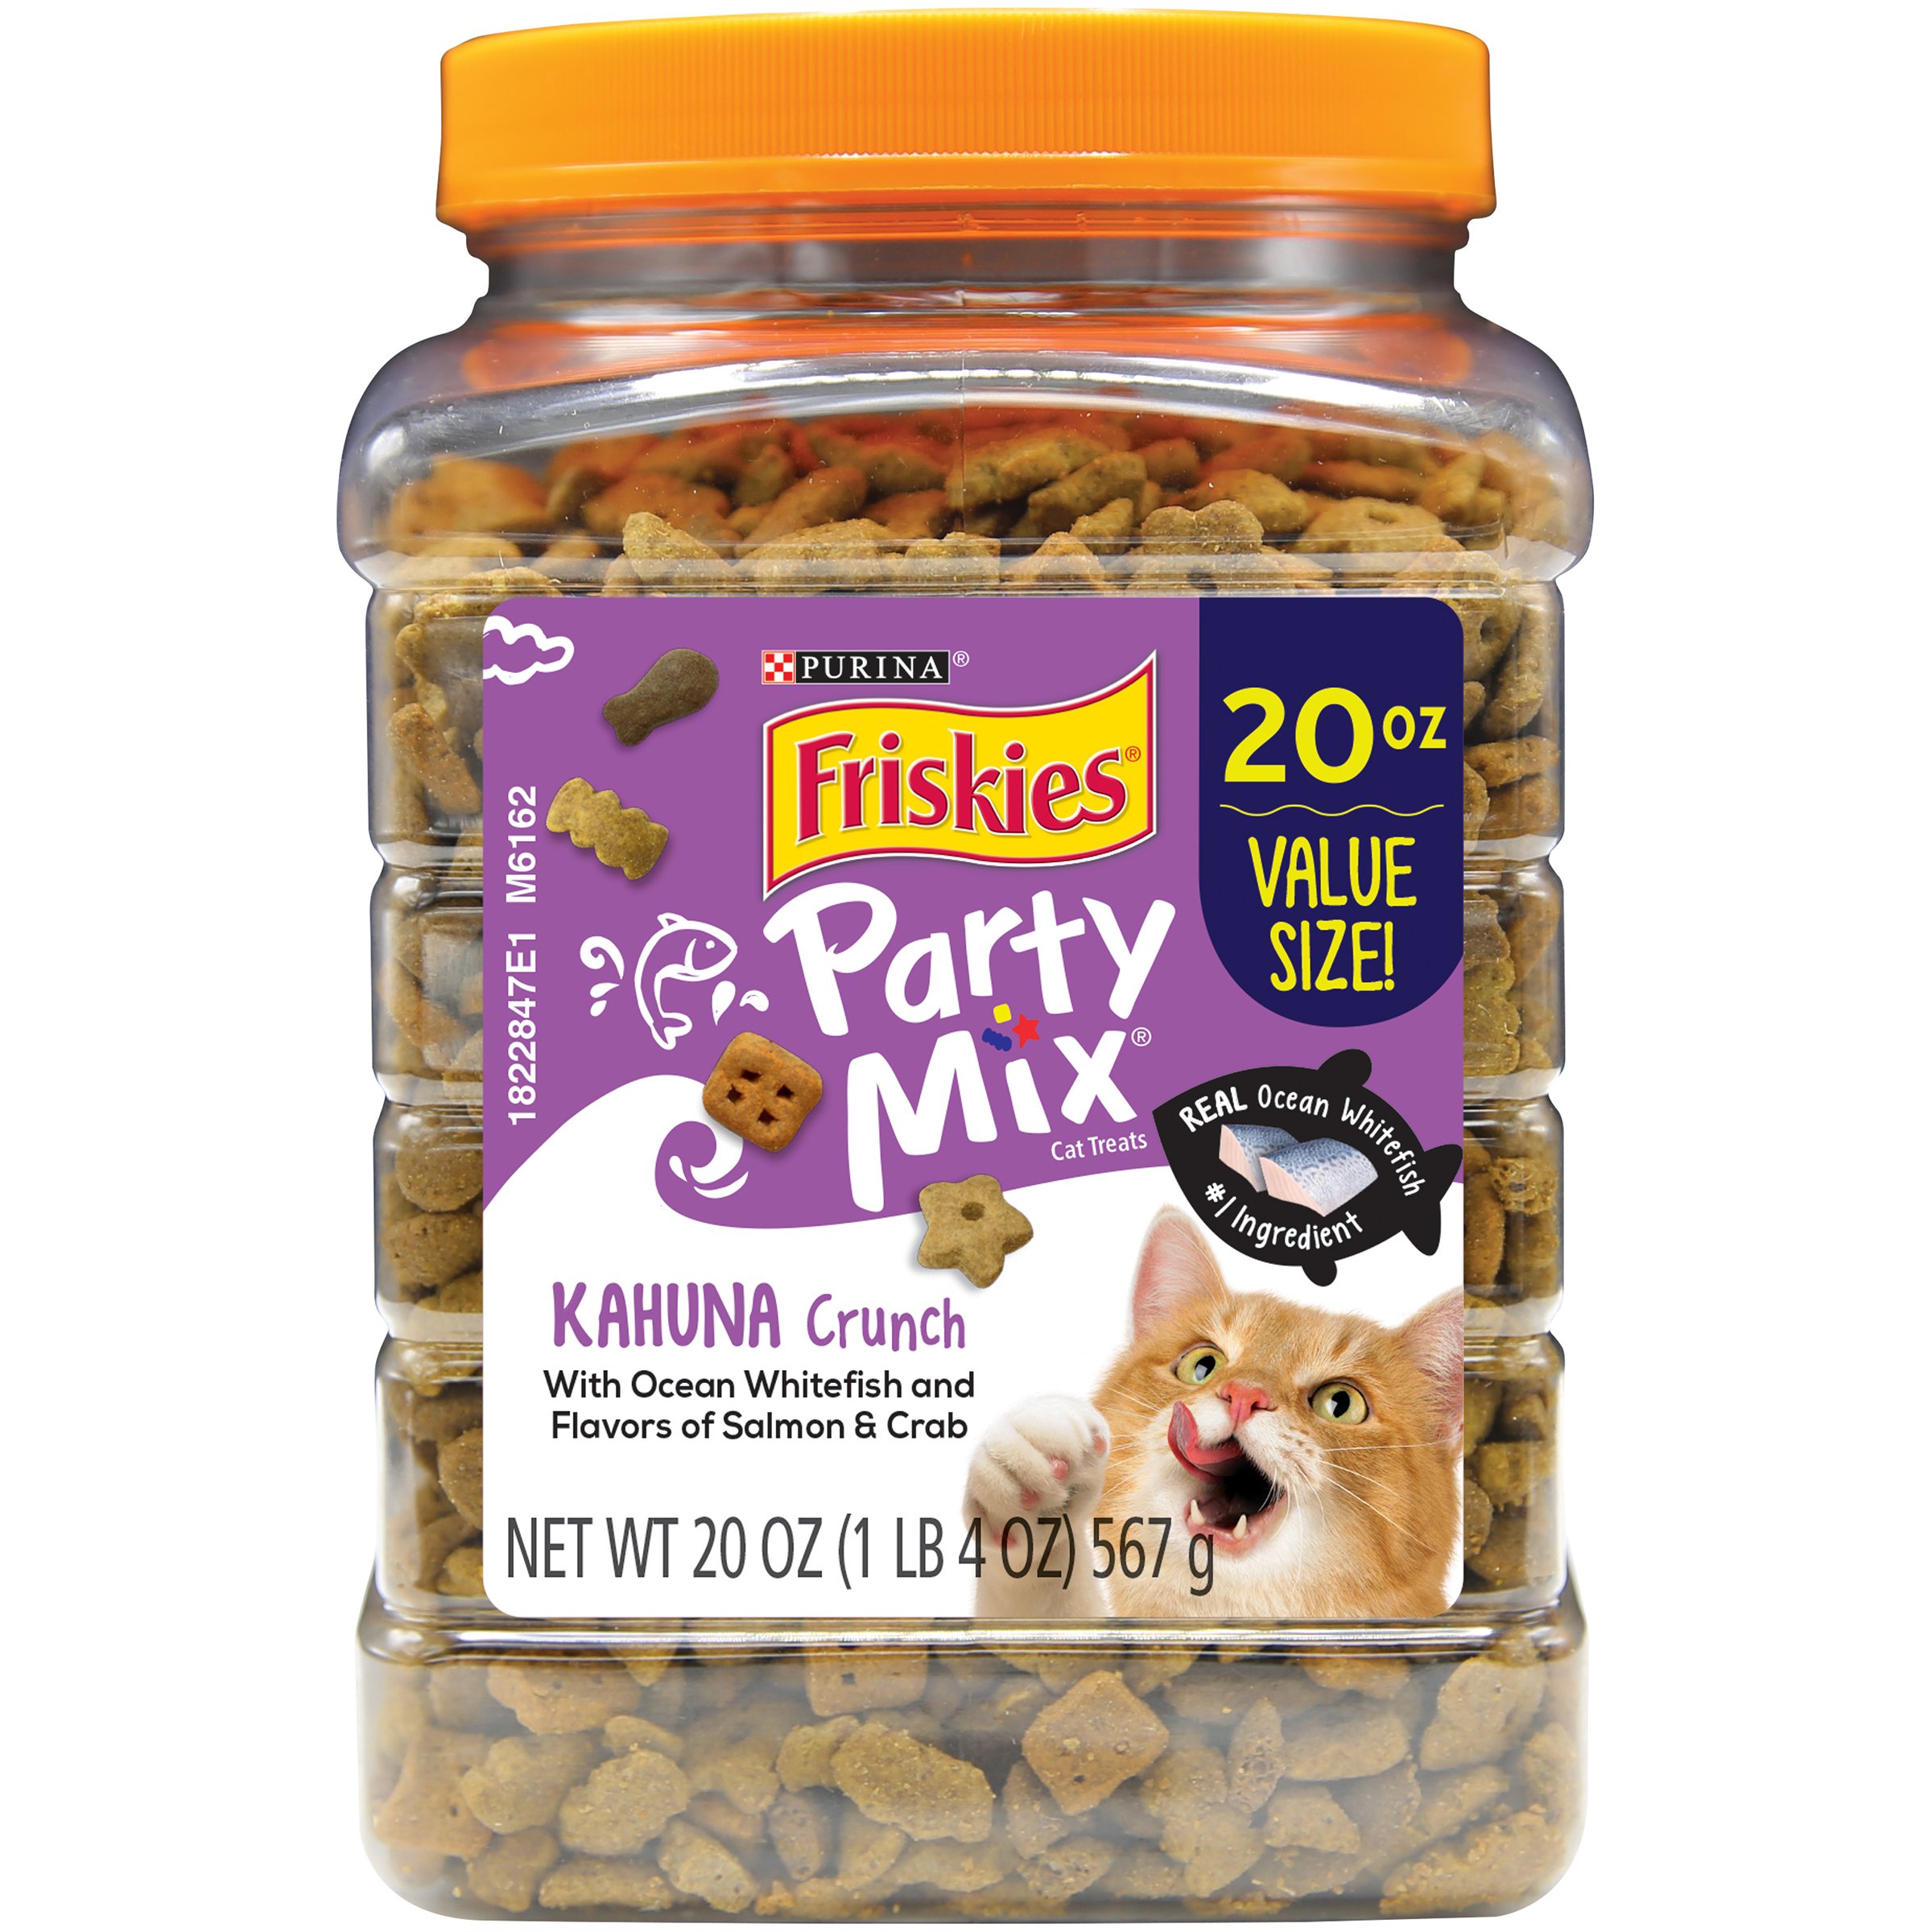 Purina Friskies Party Mix Kahuna Crunch Adult Cat Treats - 20 oz. Canister